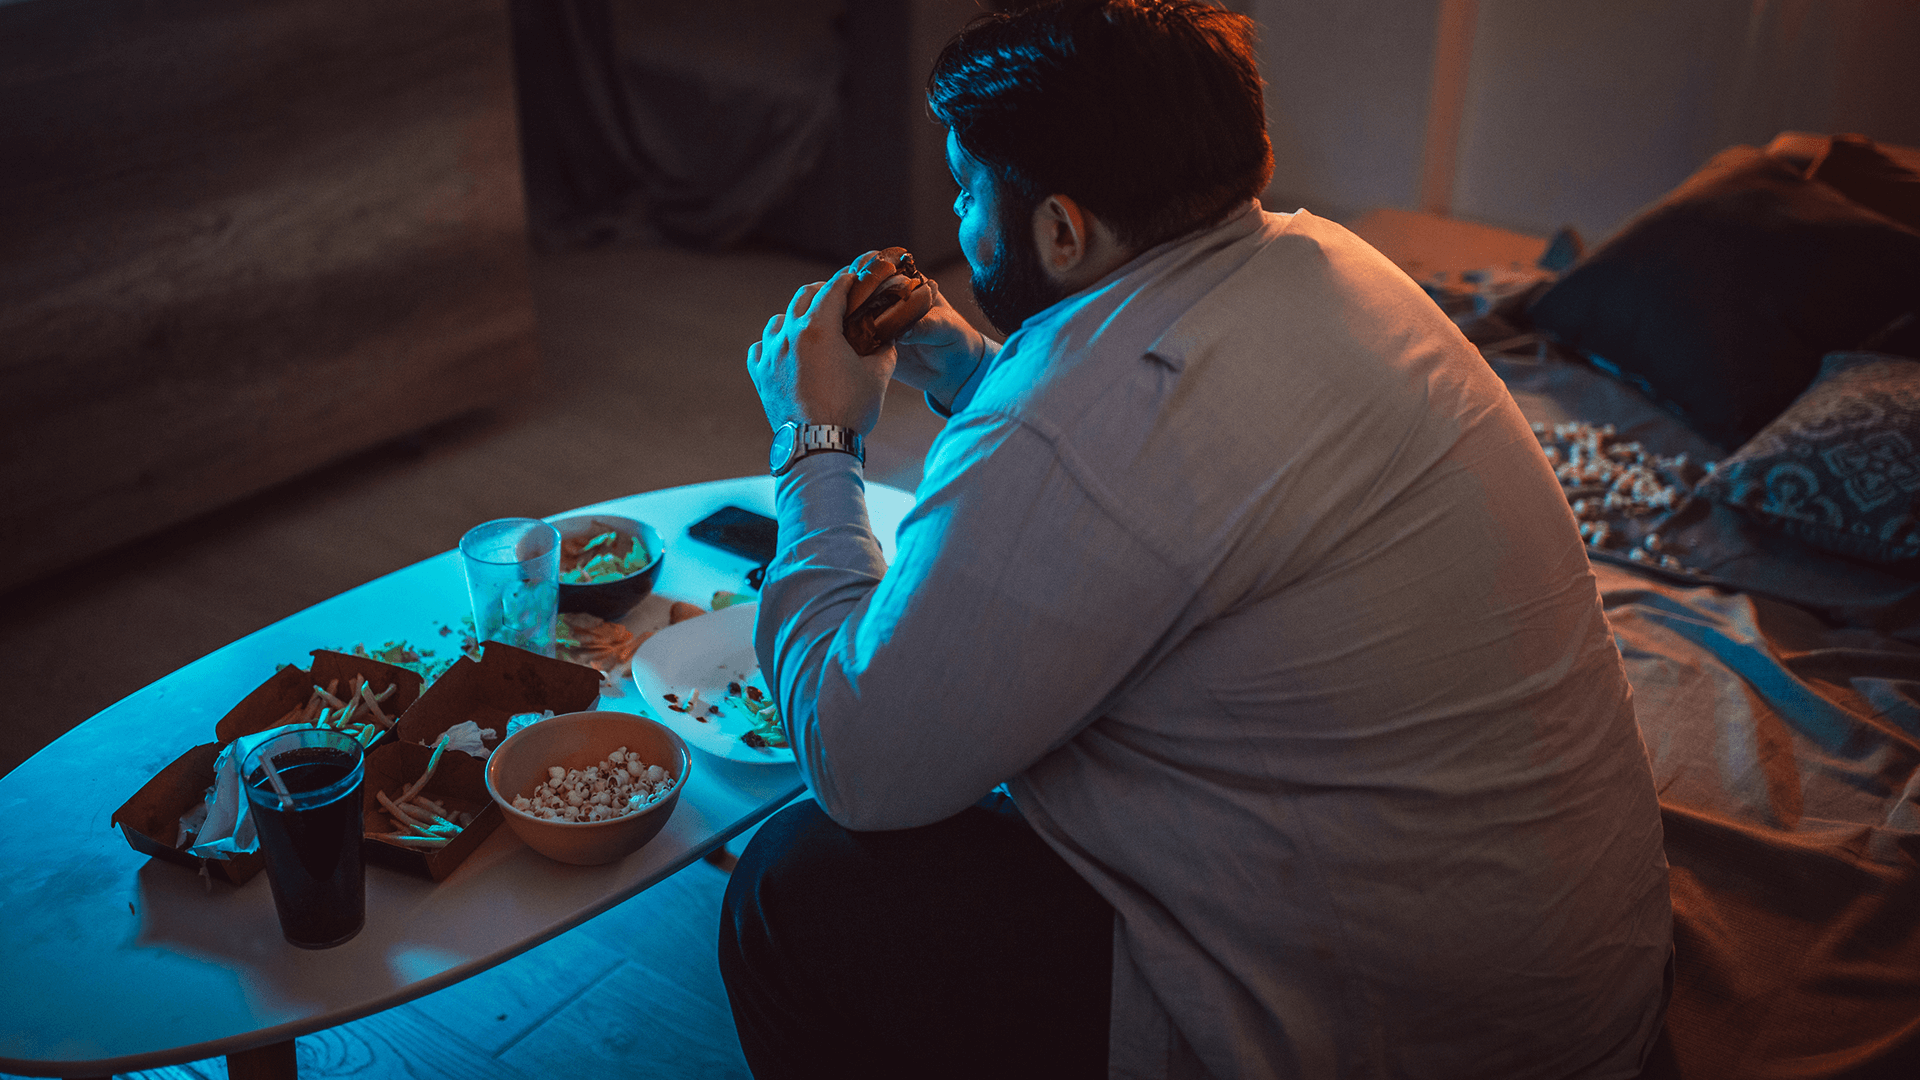 Man eating late night meal